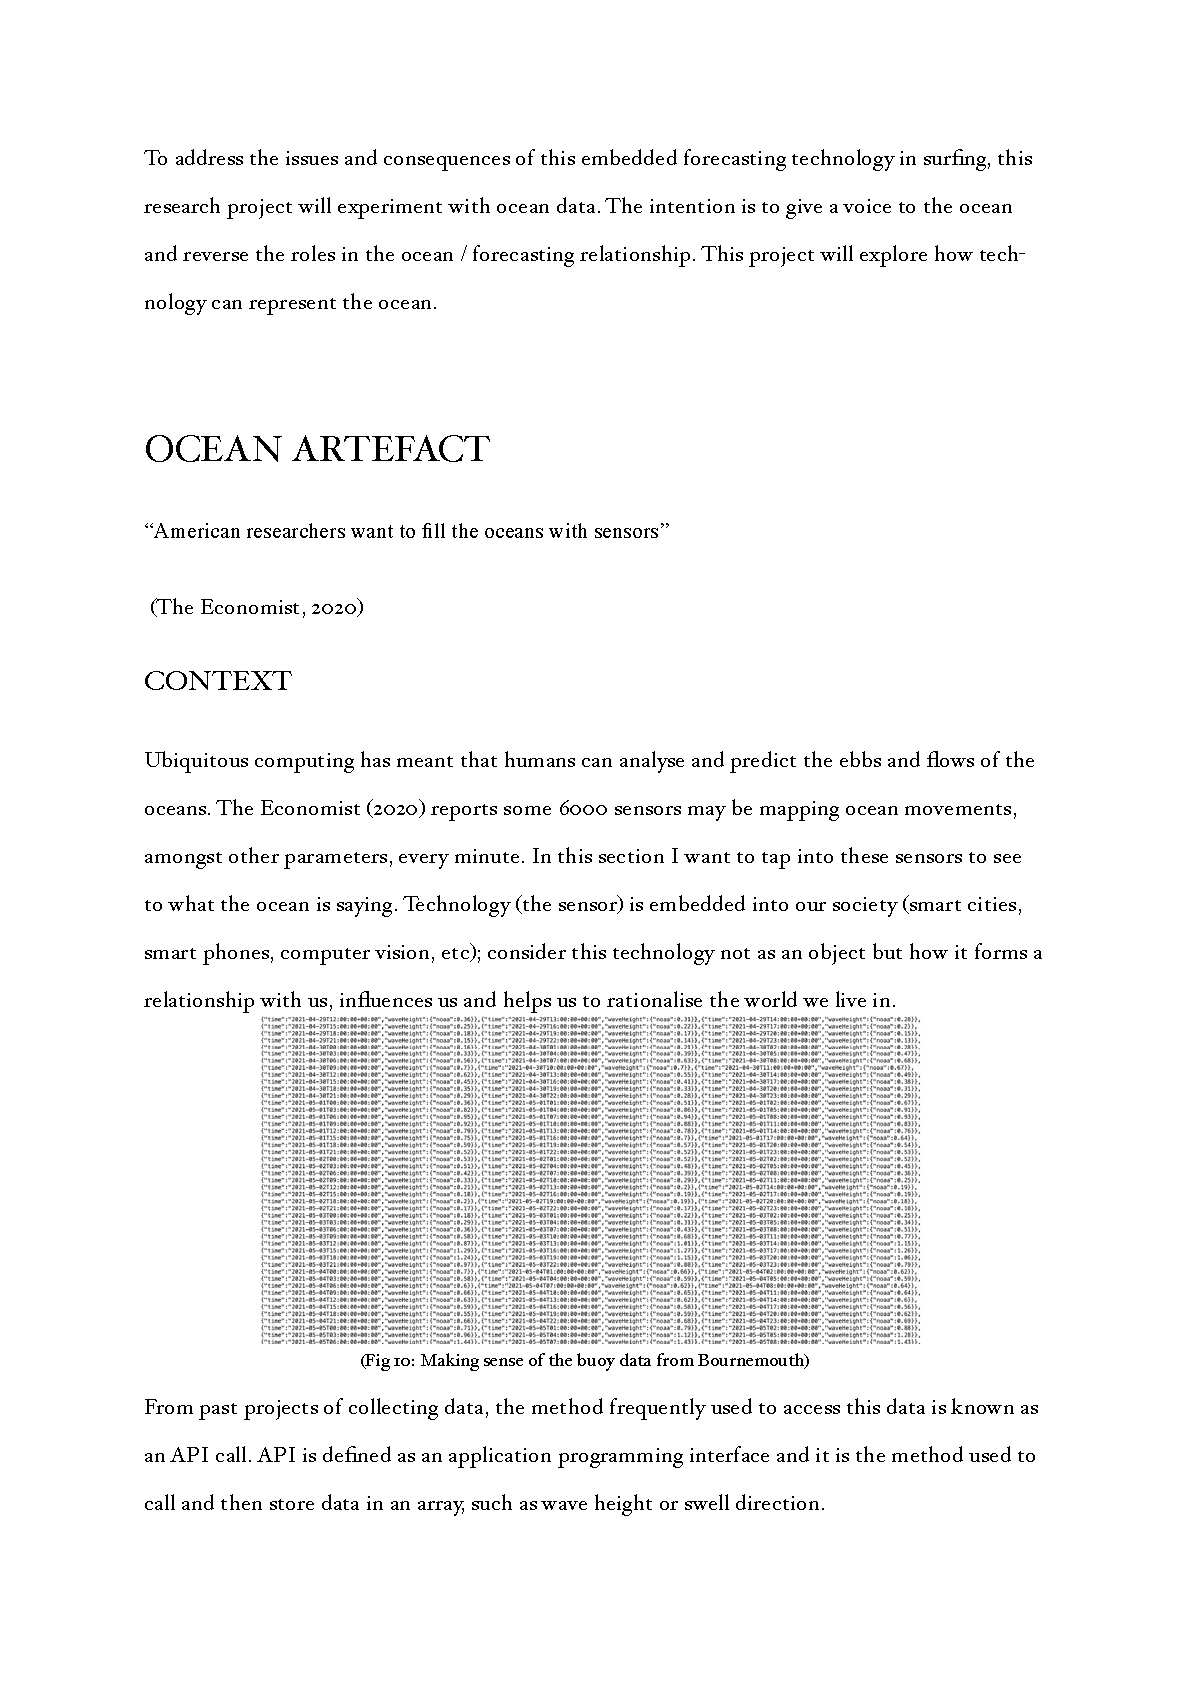 Research prj2_final_images_v2_Page_14